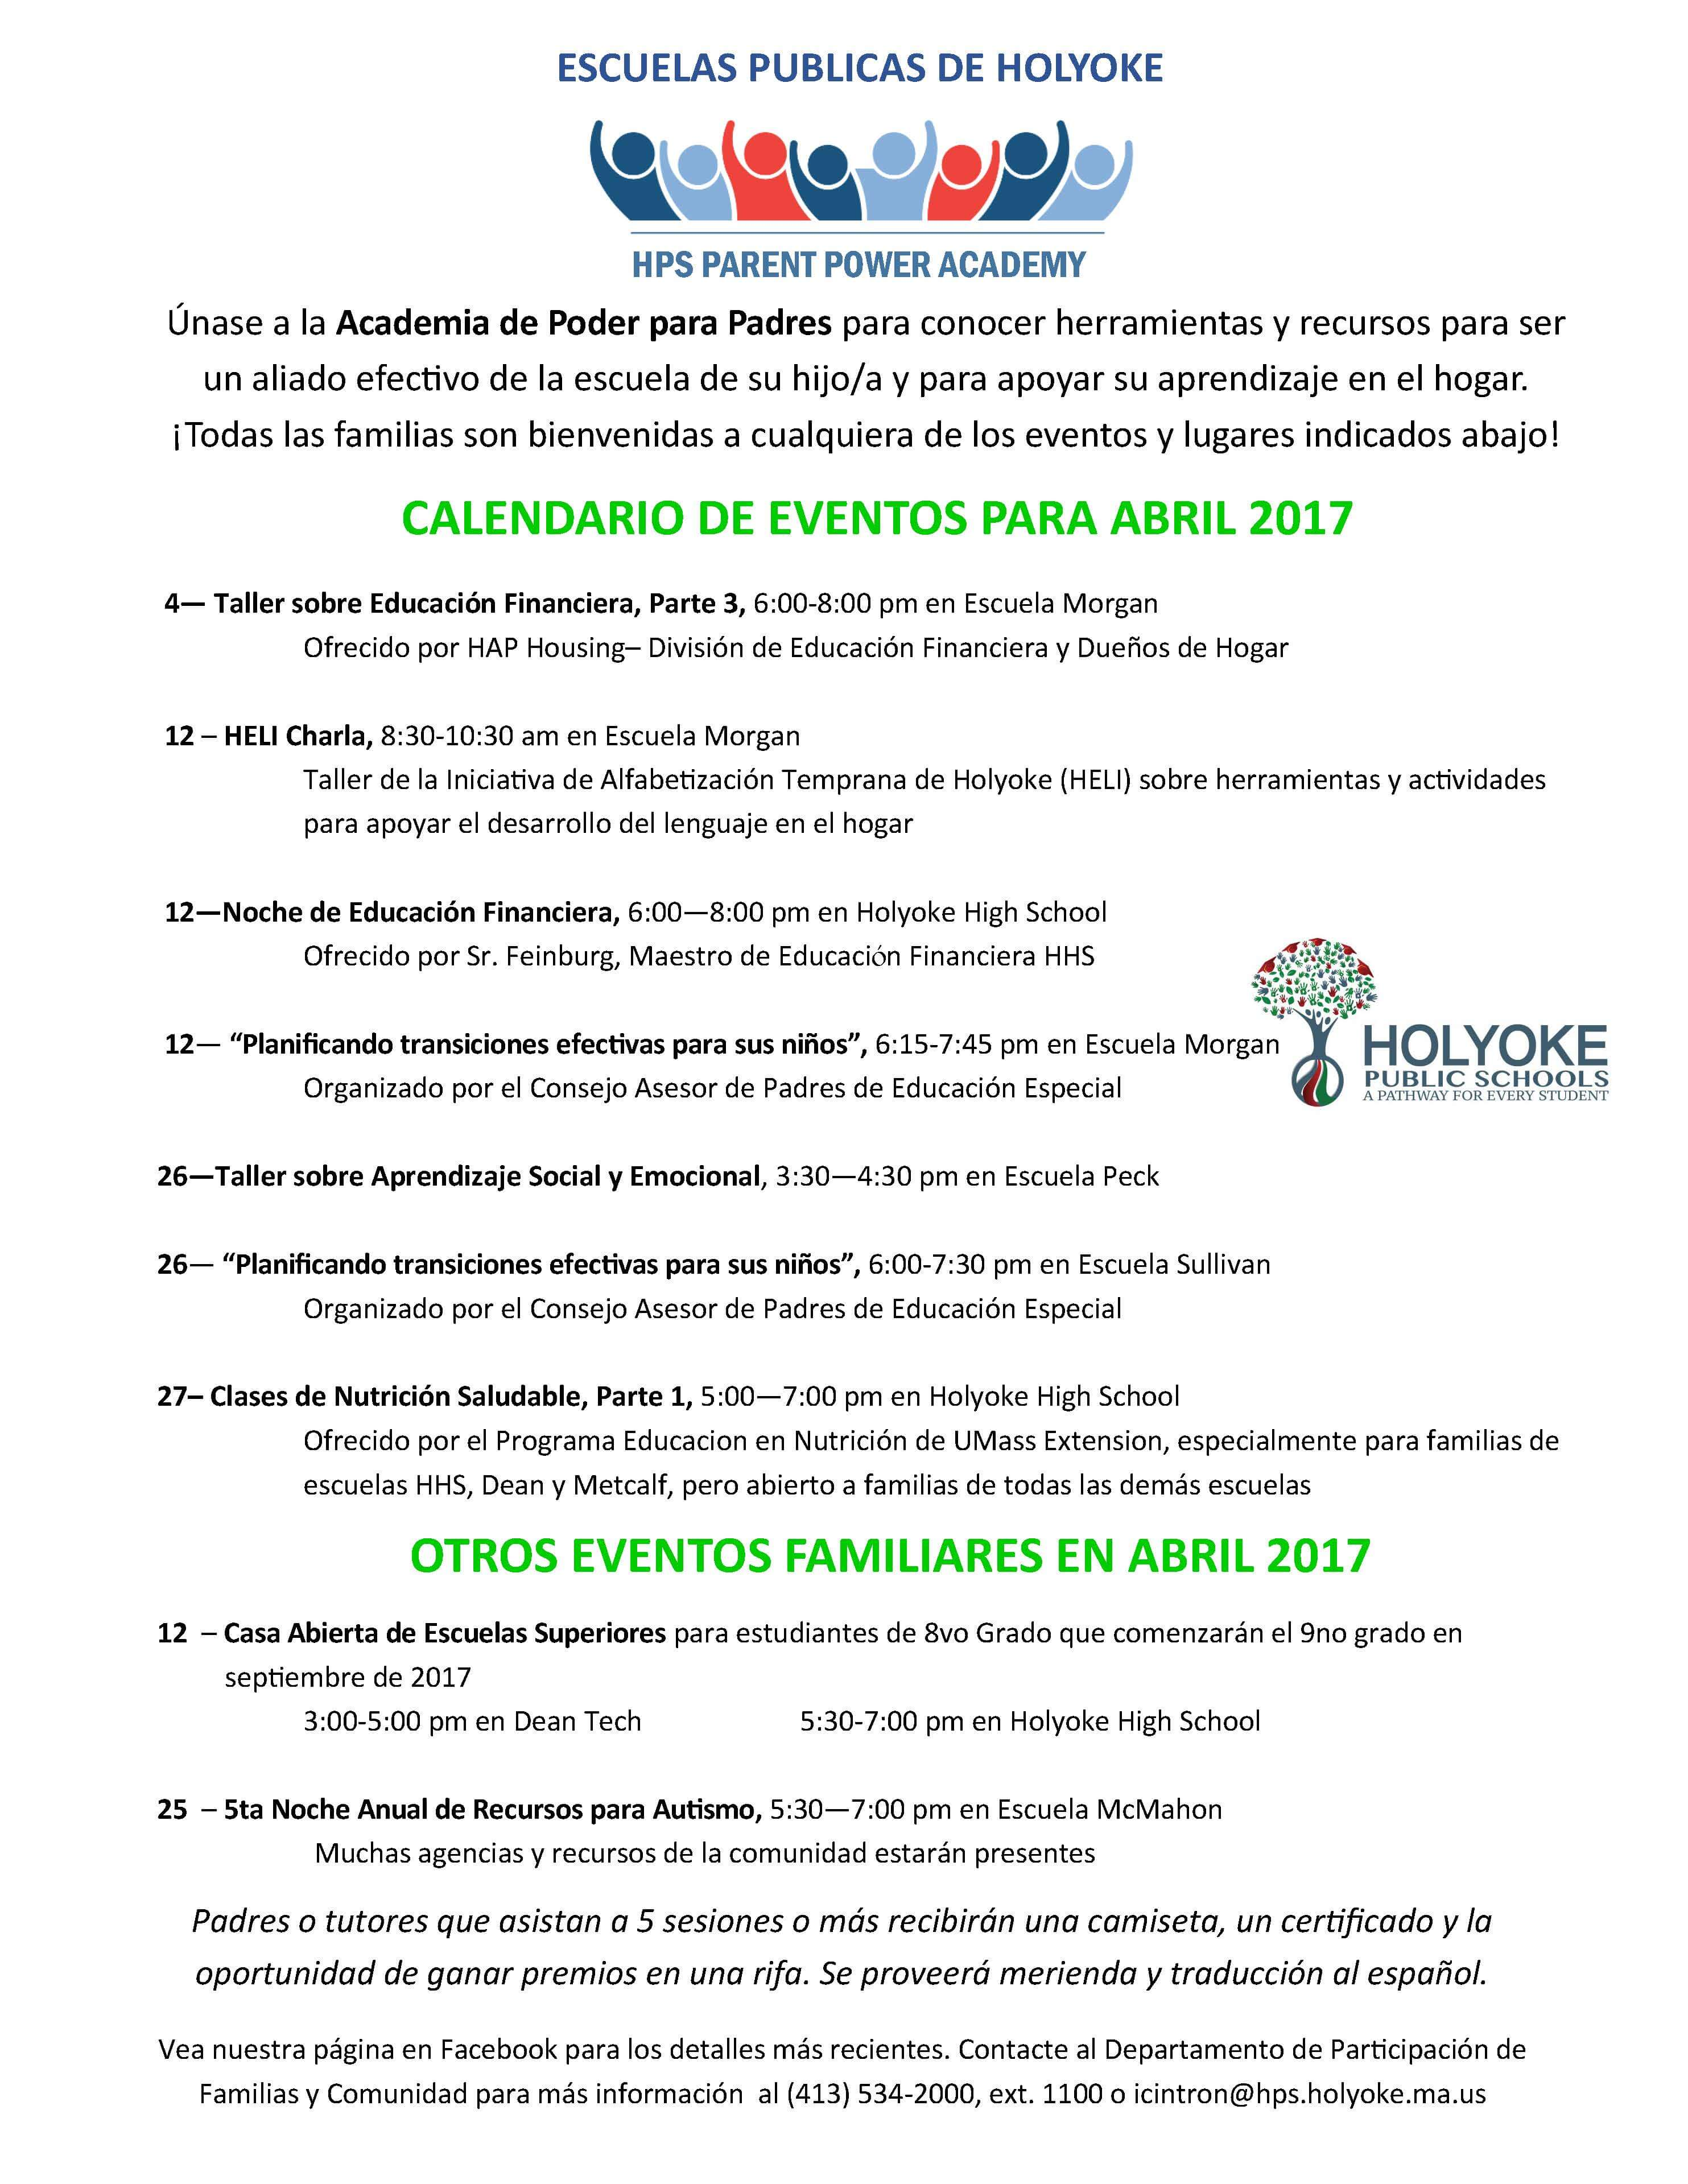 April family events 2